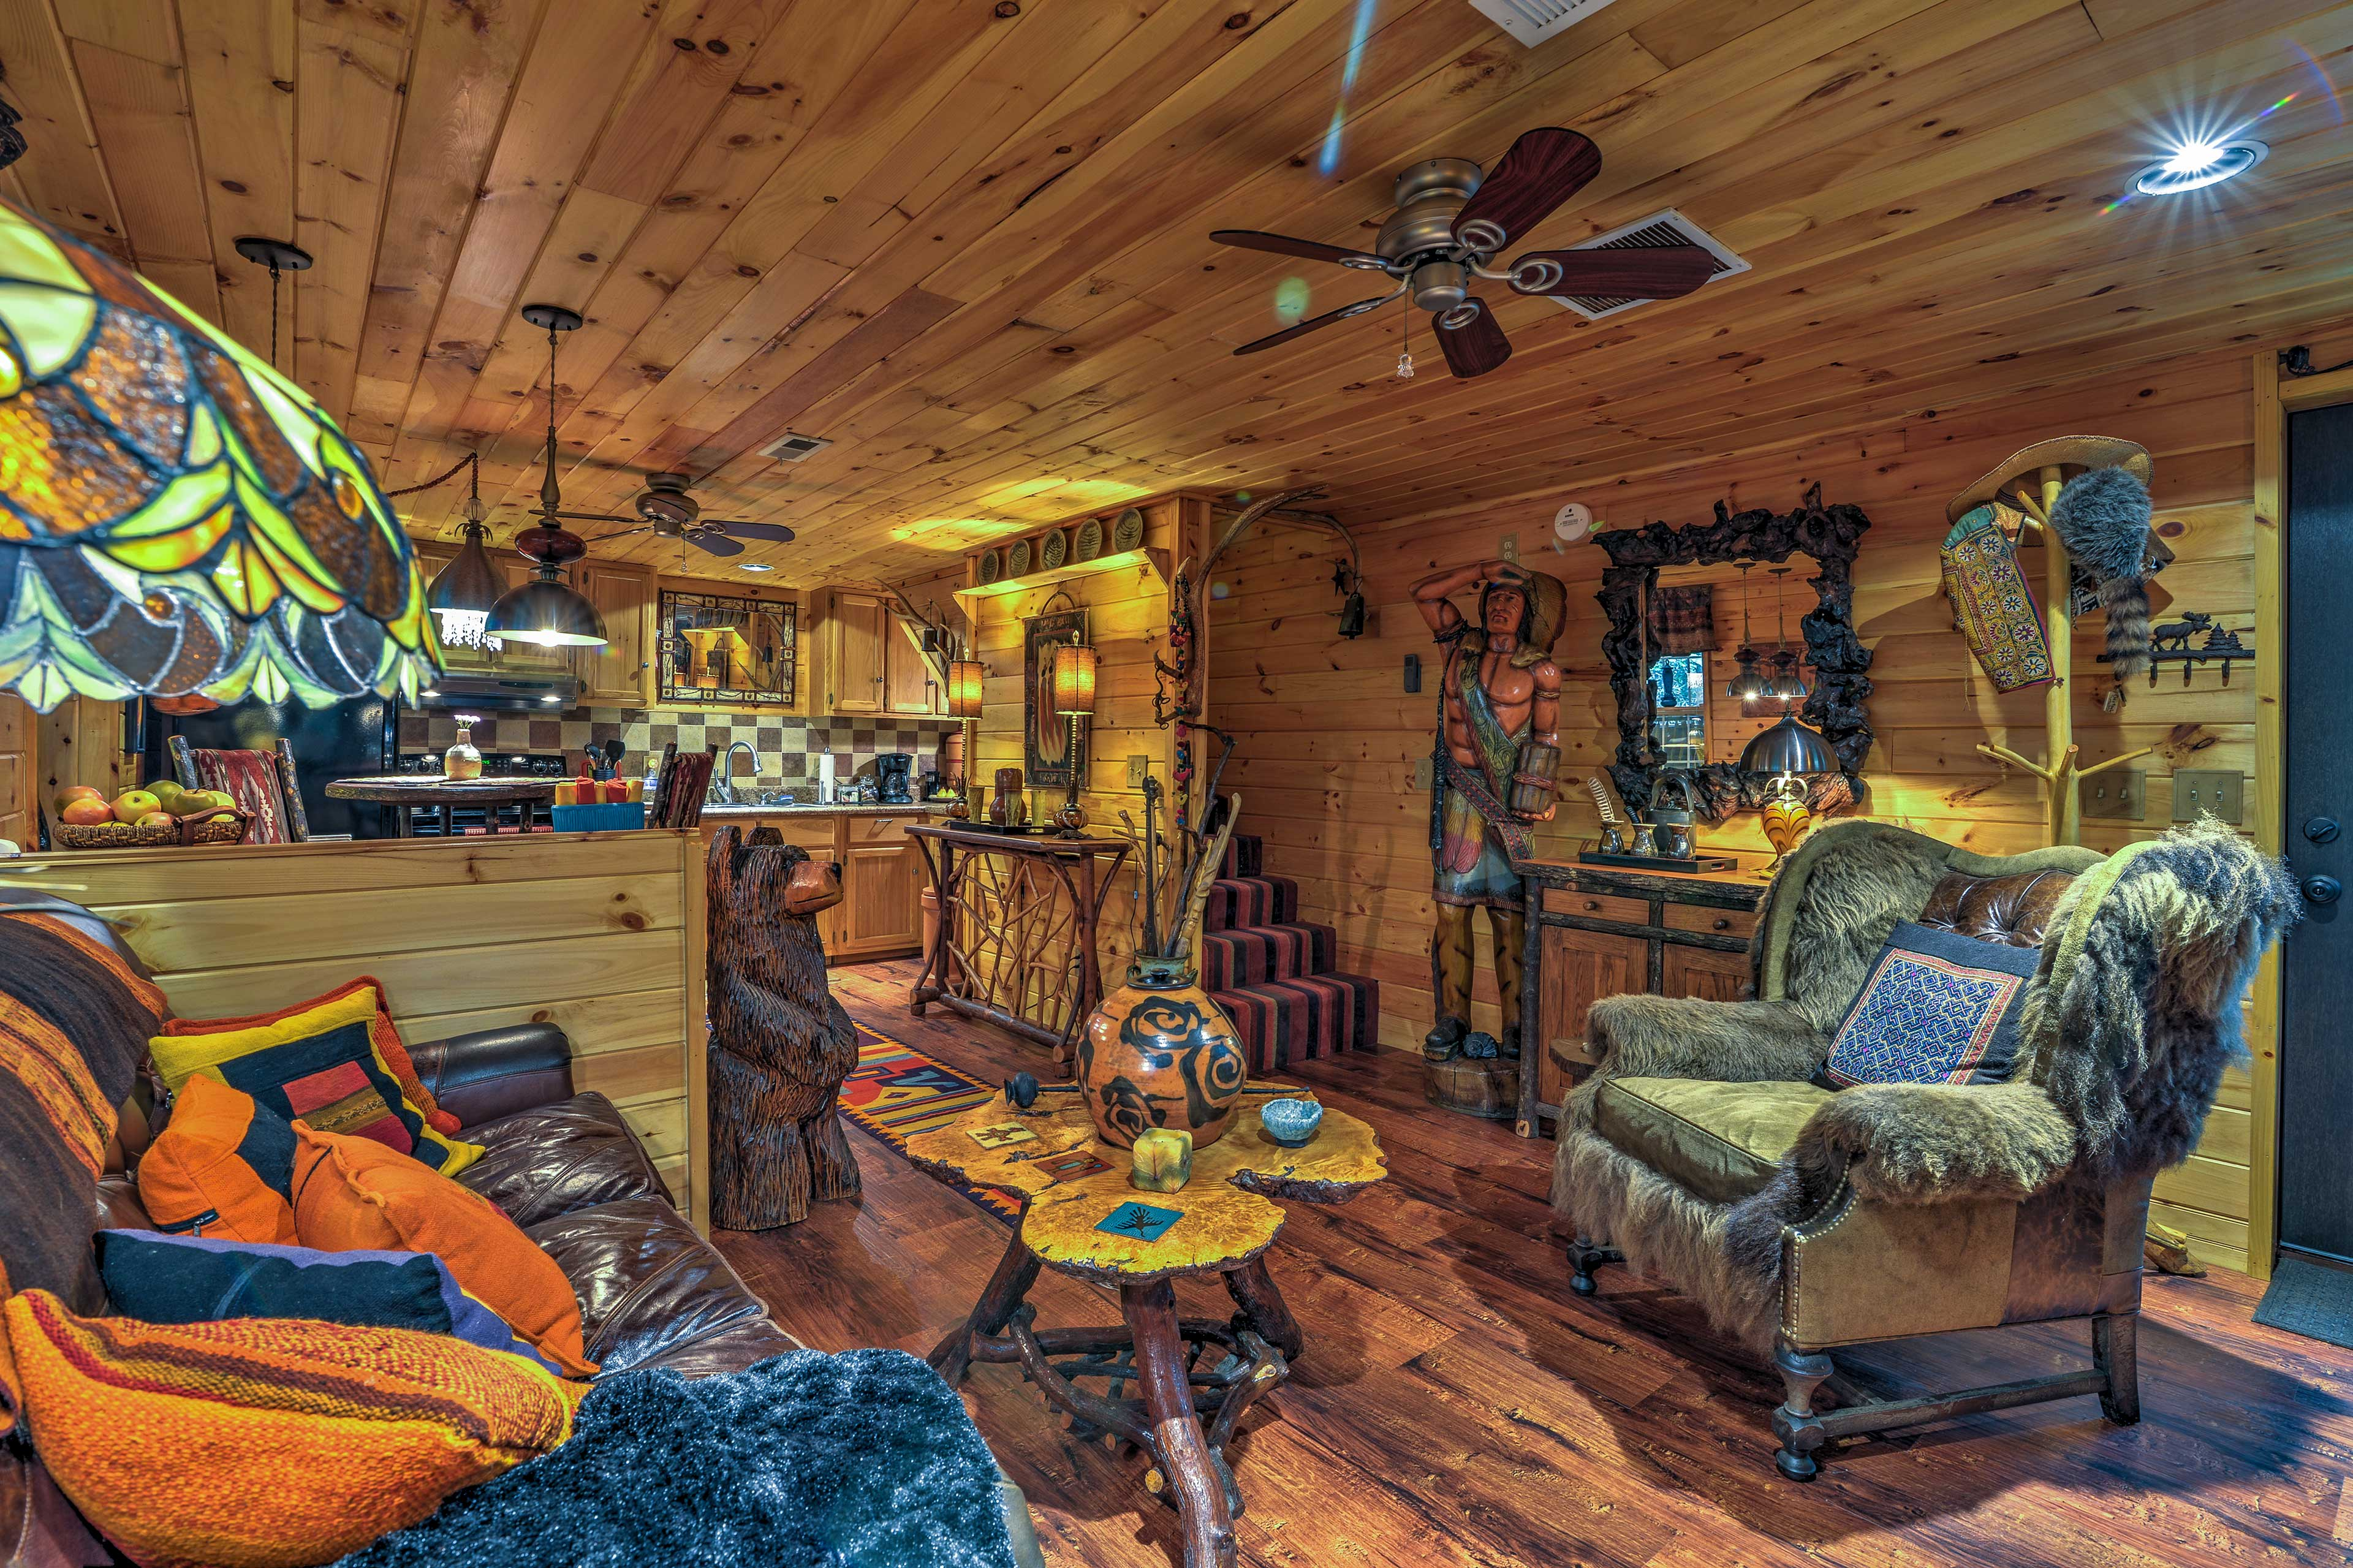 Warm up by the propane gas log fireplace and sit on the fur-lined leather chair.